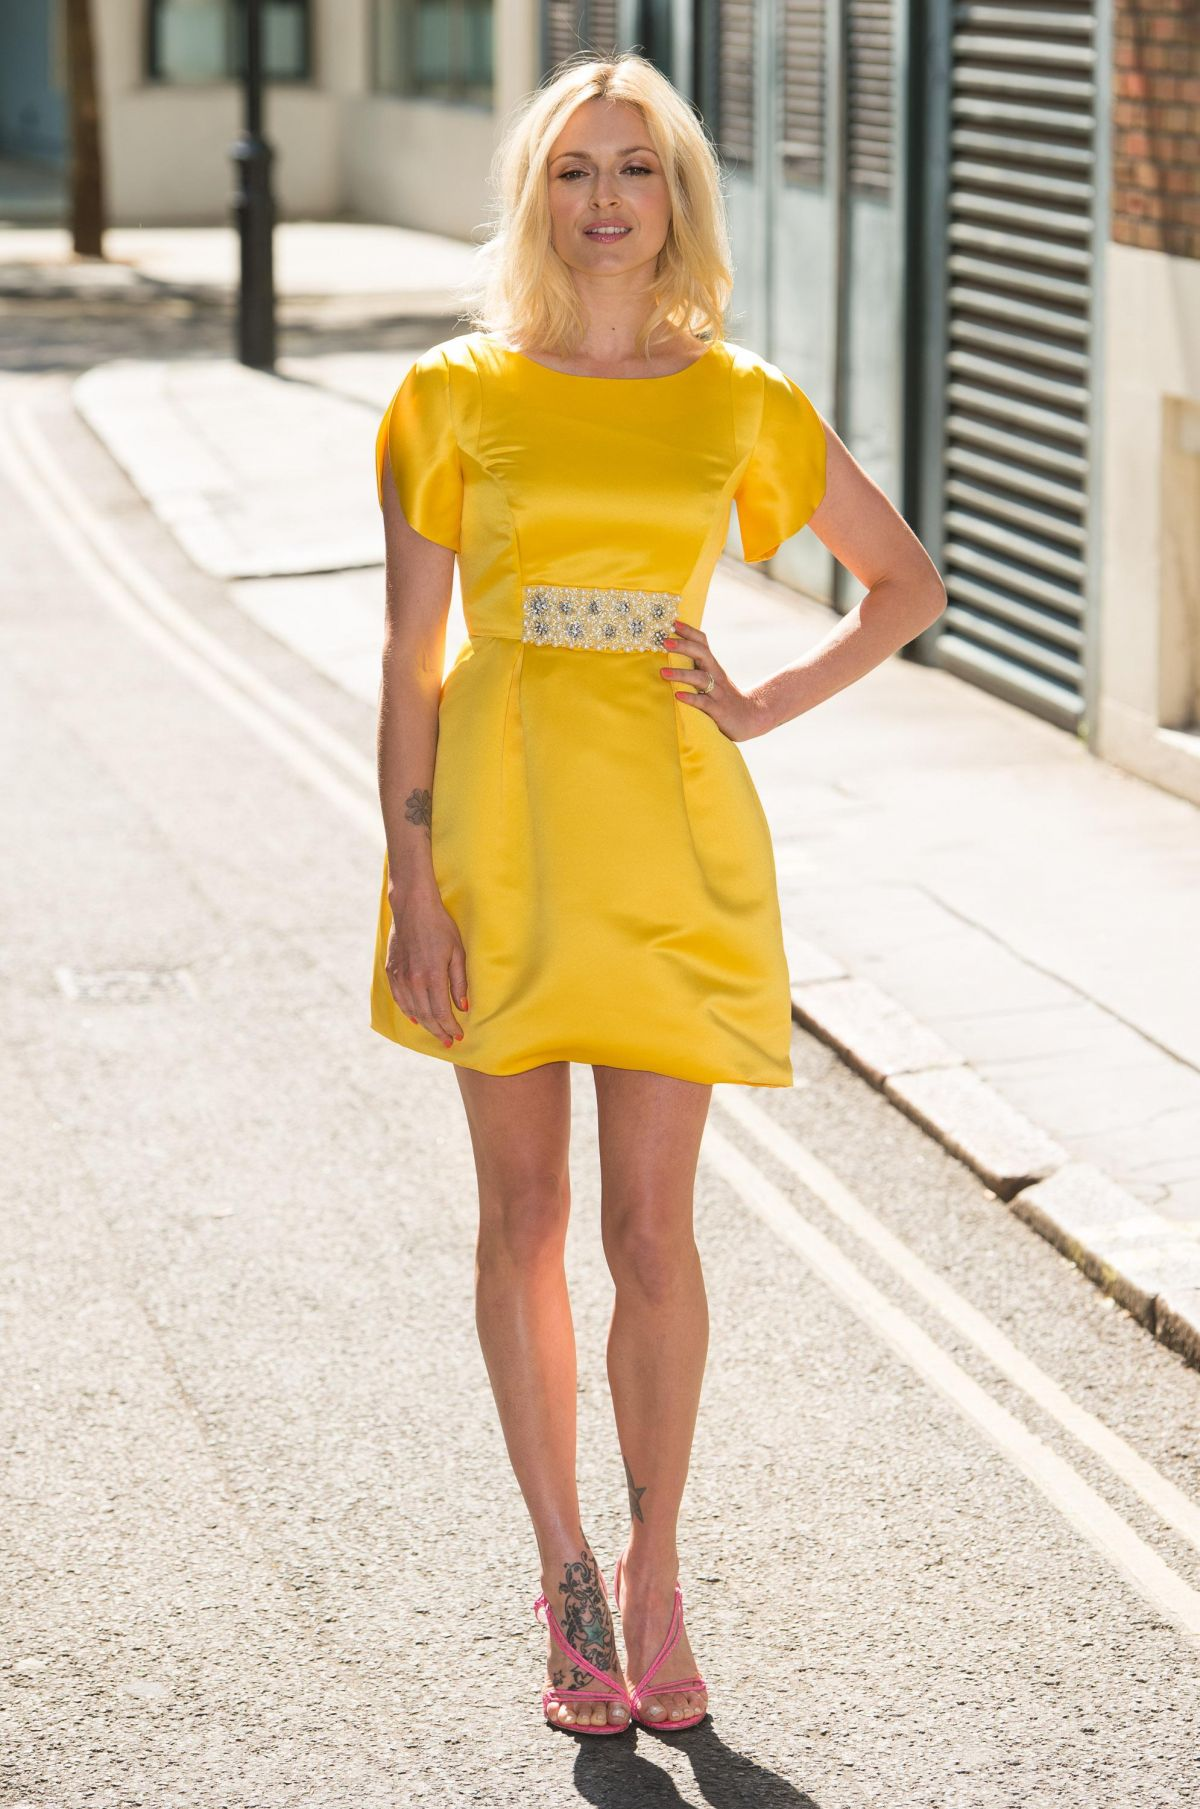 FEARNE COTTON at A/W14 Fashion Collection for very.co.uk - HawtCelebs